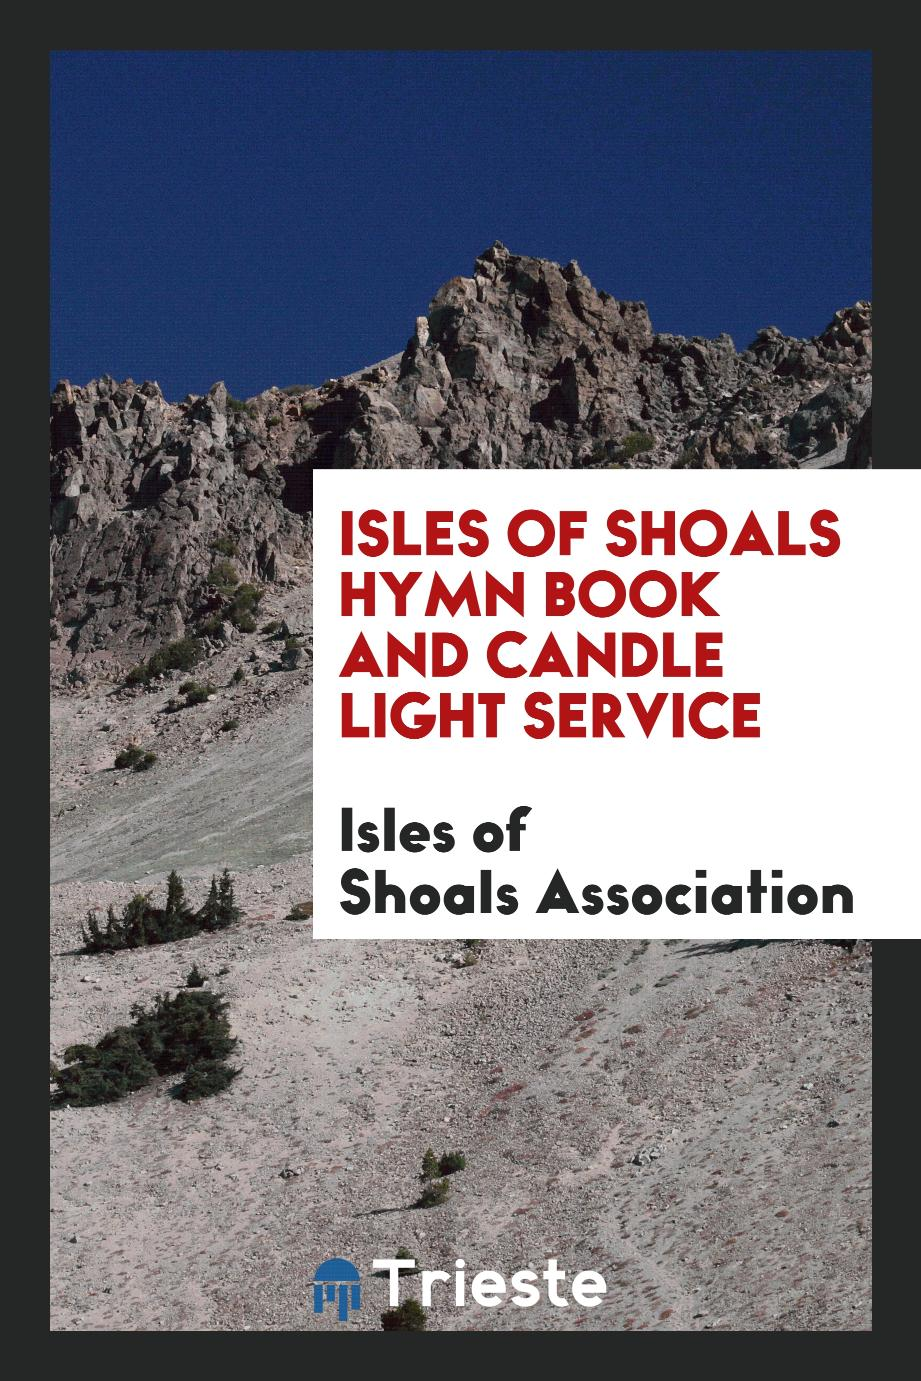 Isles of Shoals Hymn Book and Candle Light Service